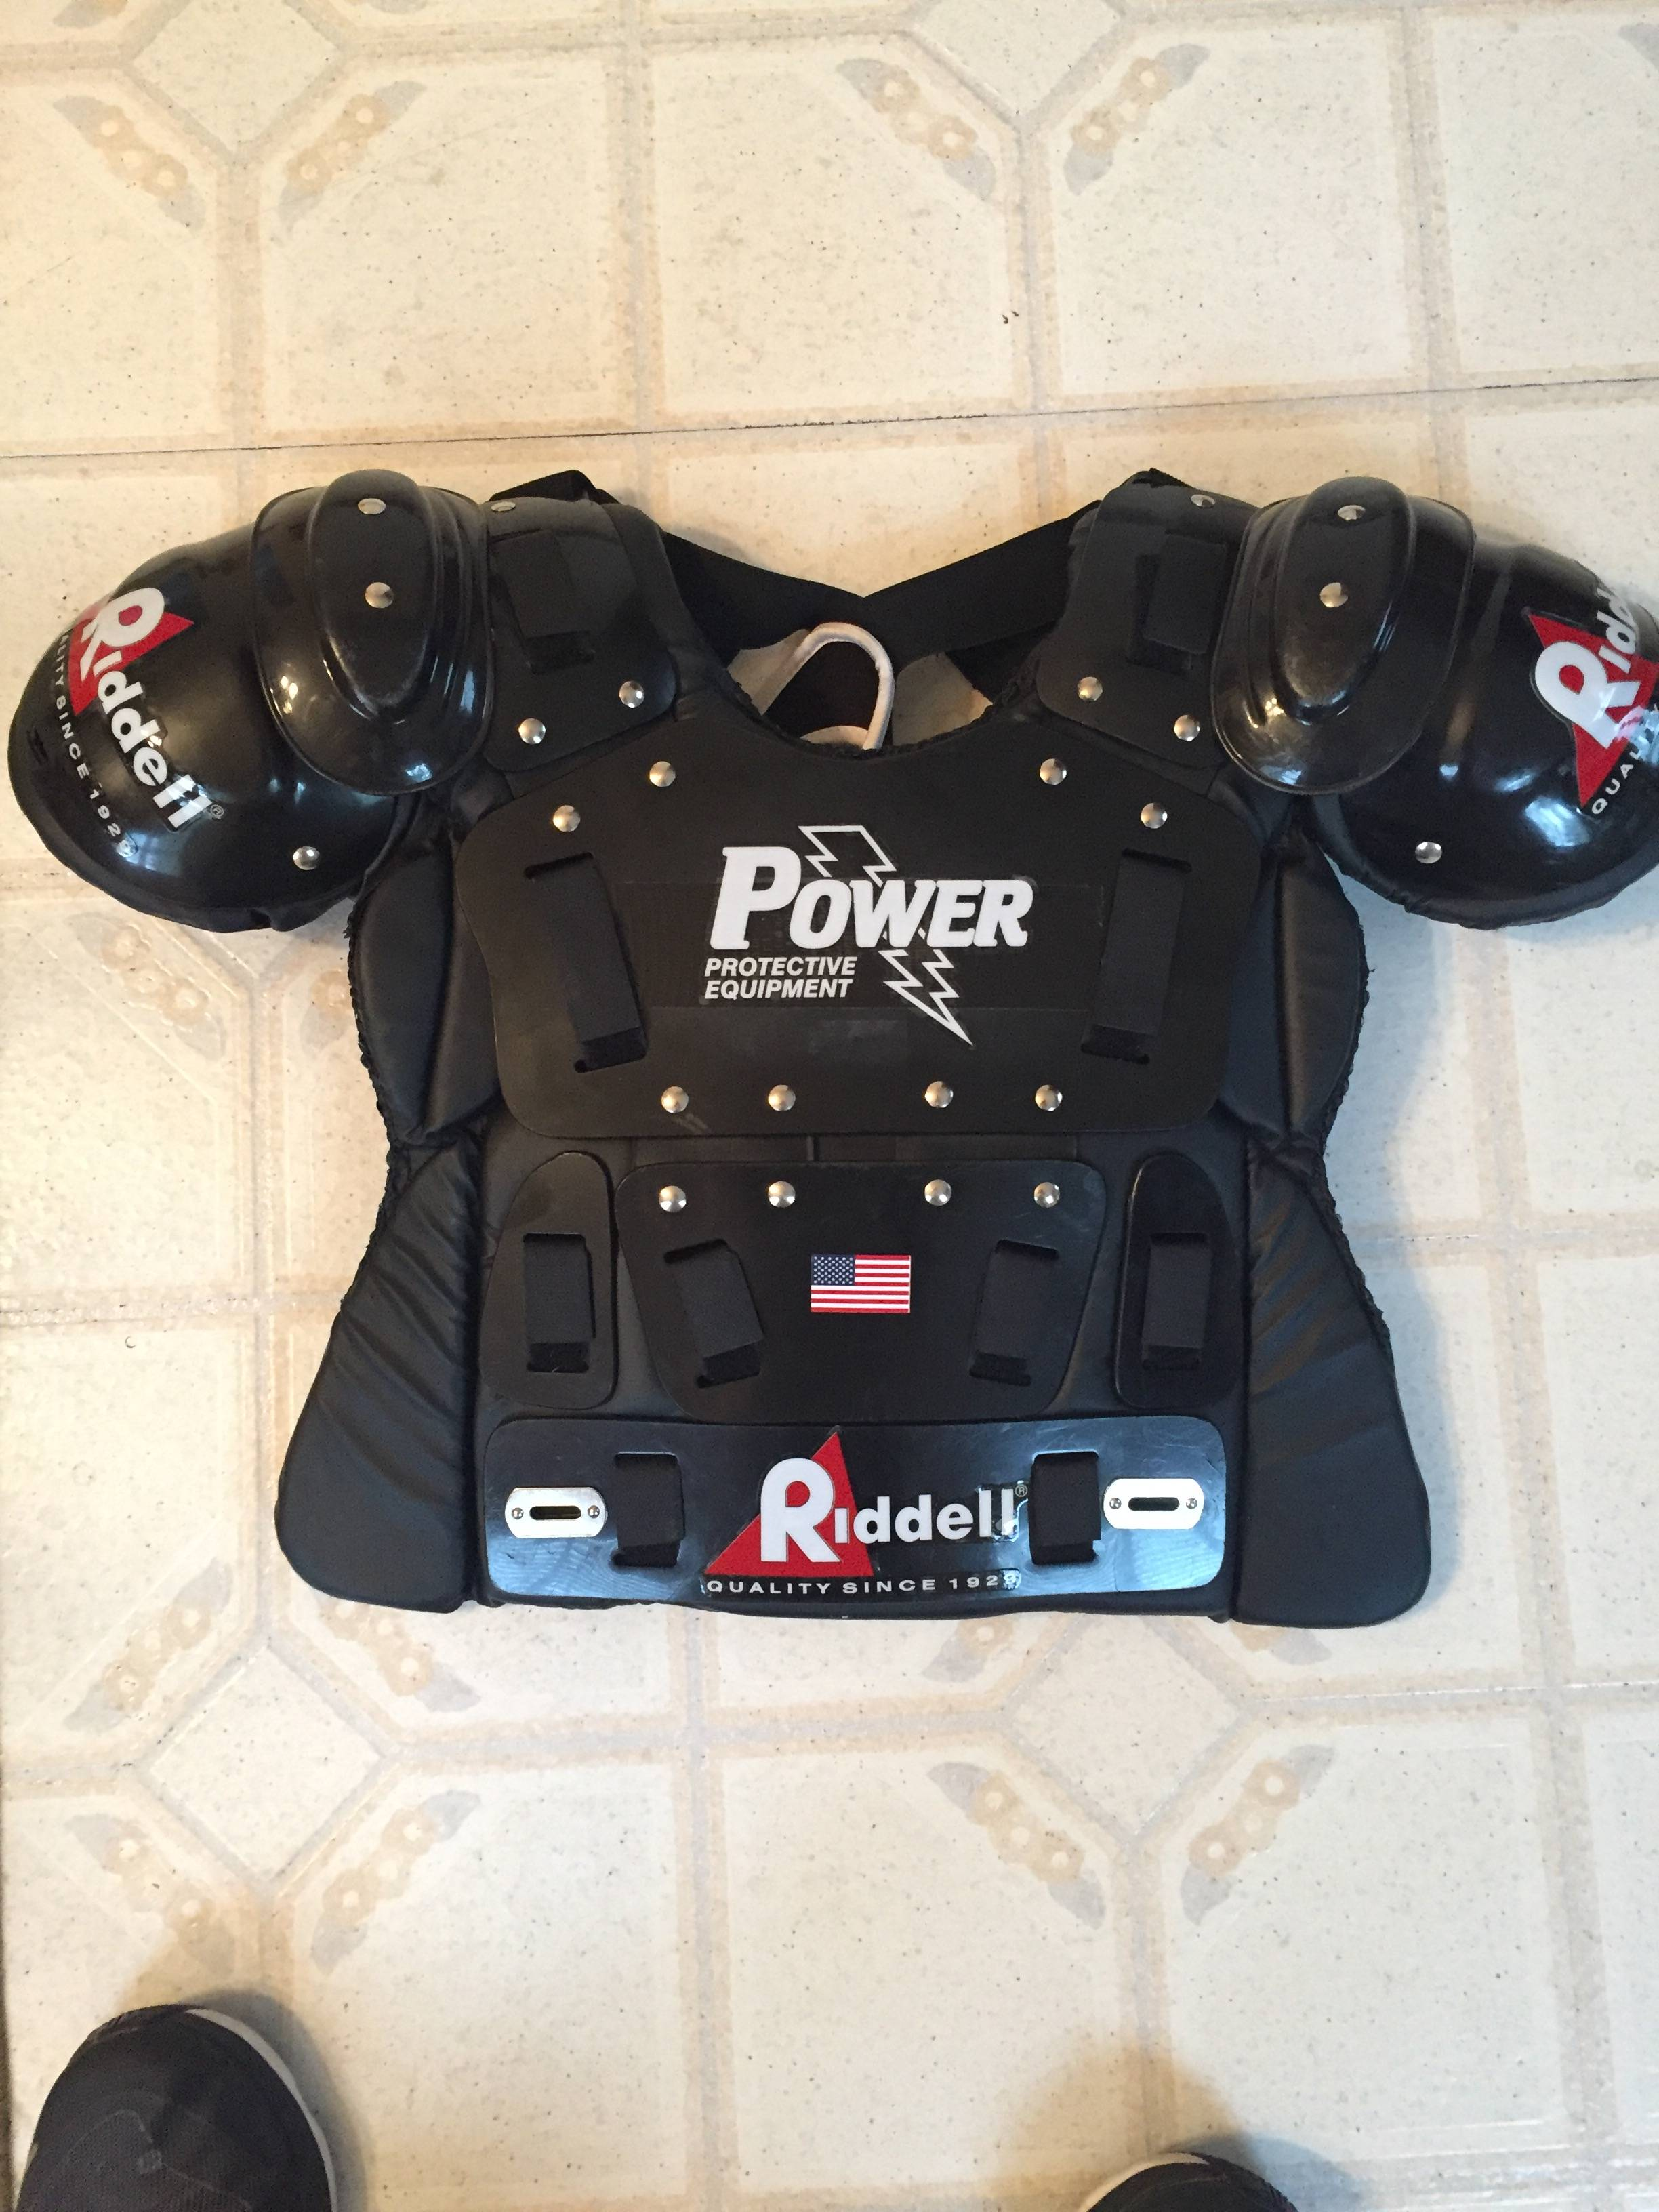 Riddell Power Umpire Stickers $10 each or 4 for $30 - Buy, Sell or ...